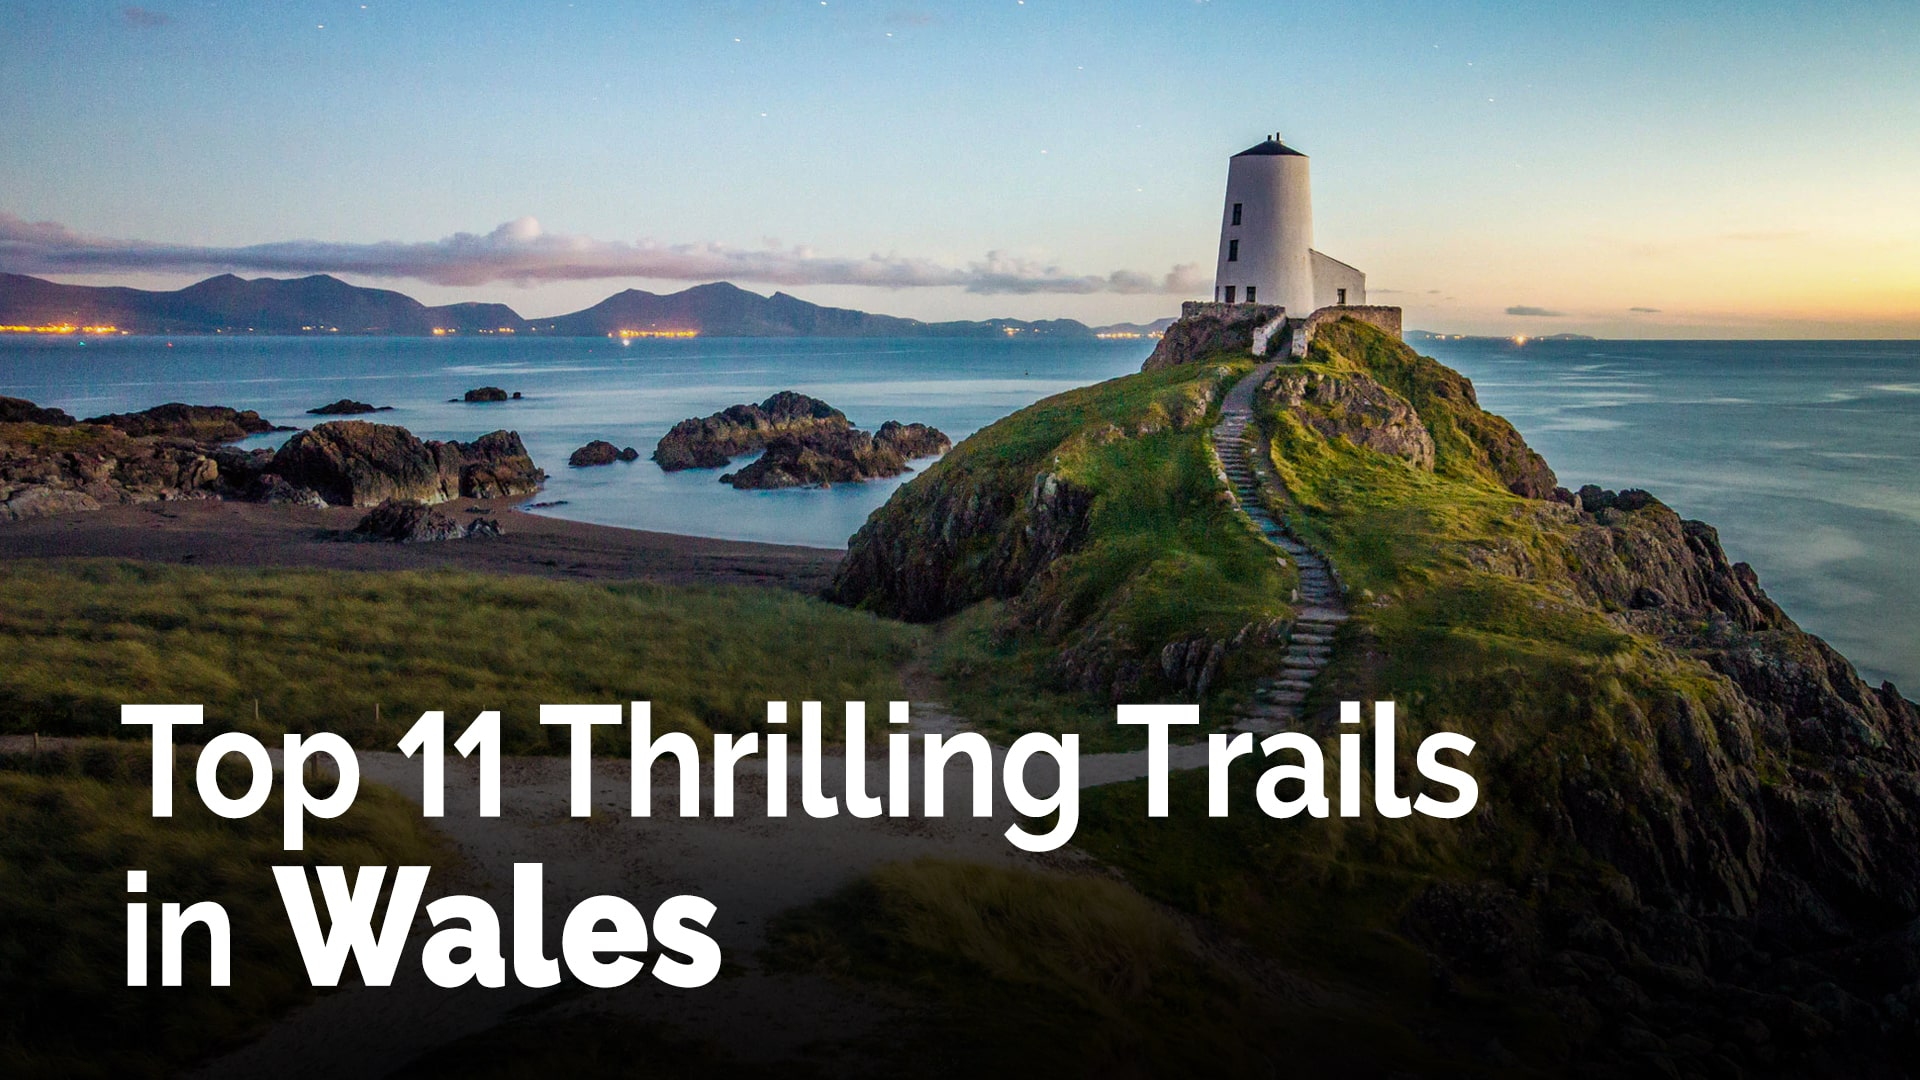 Top 11 Thrilling Trails in Wales